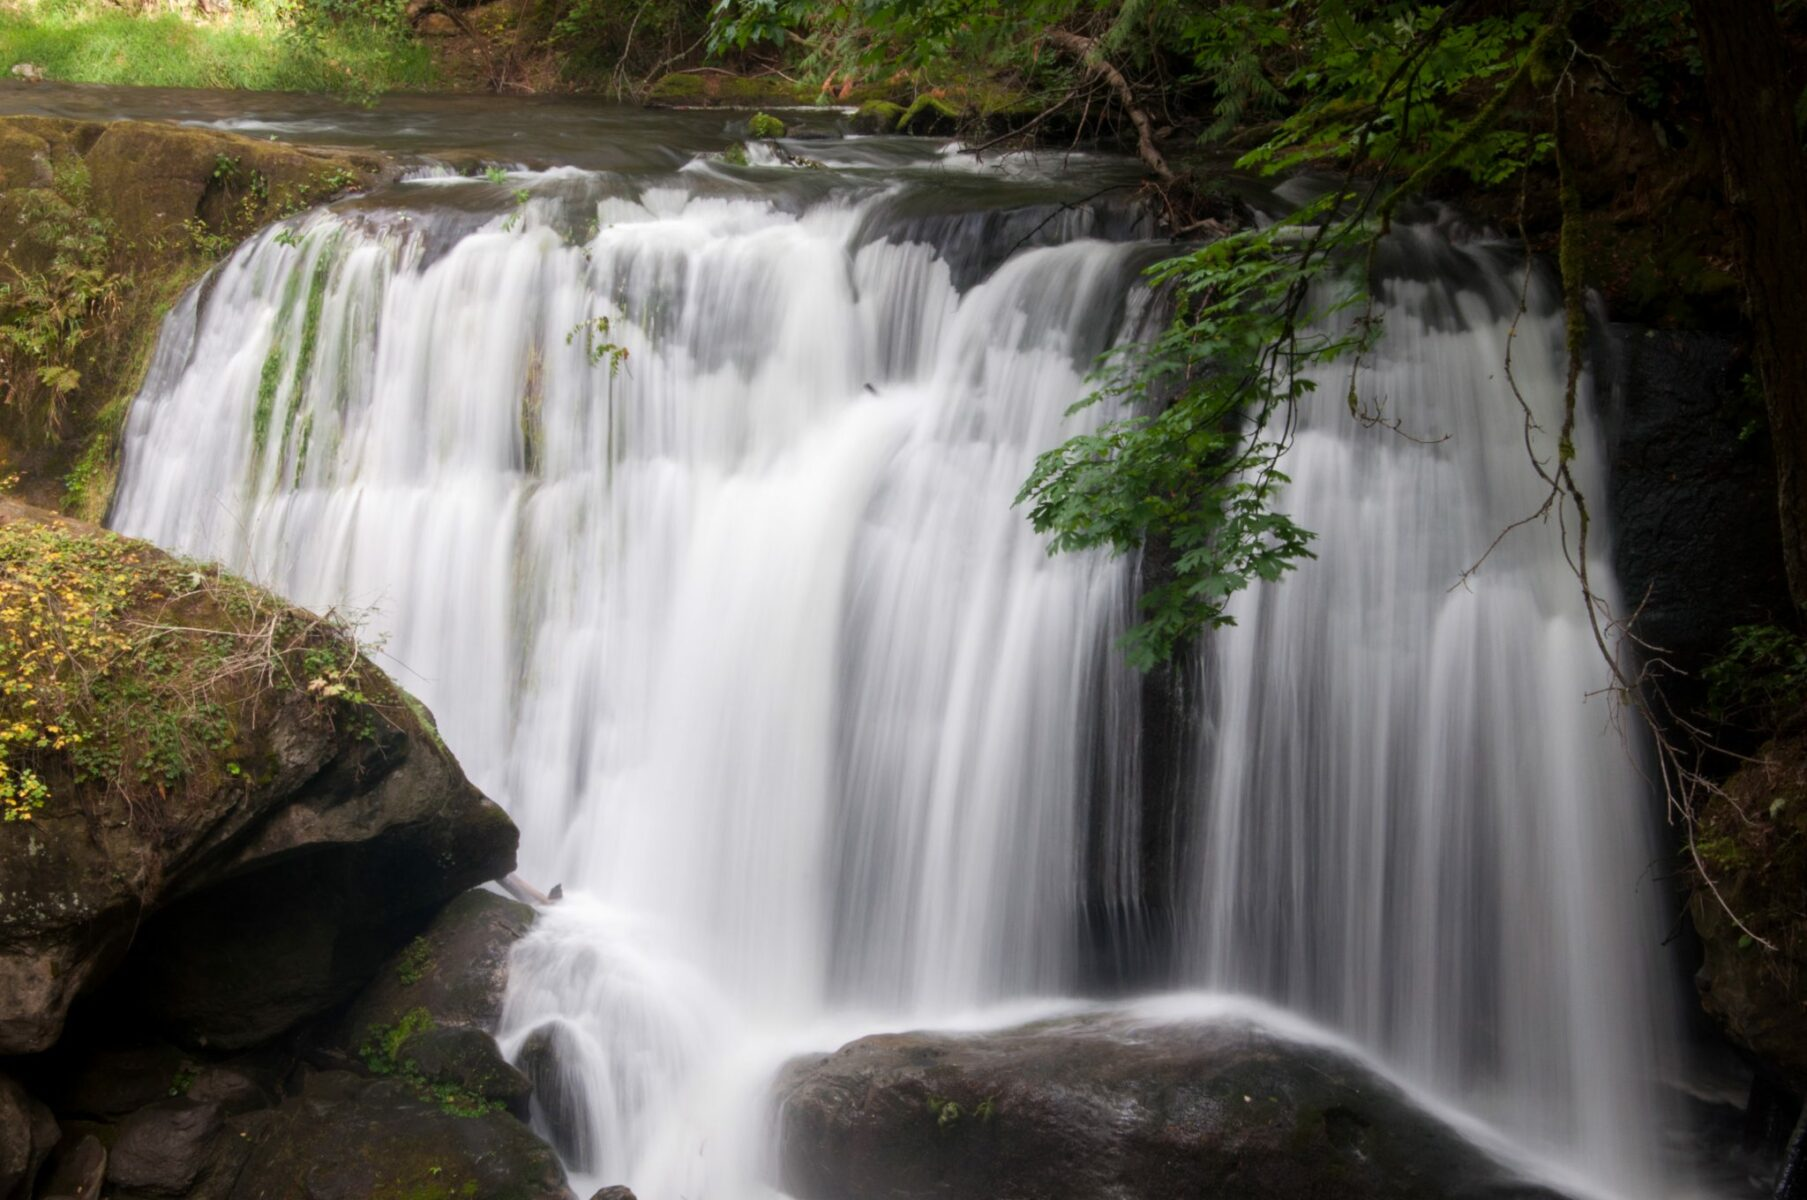 A wide waterfall going over rocks with a surrounding forest